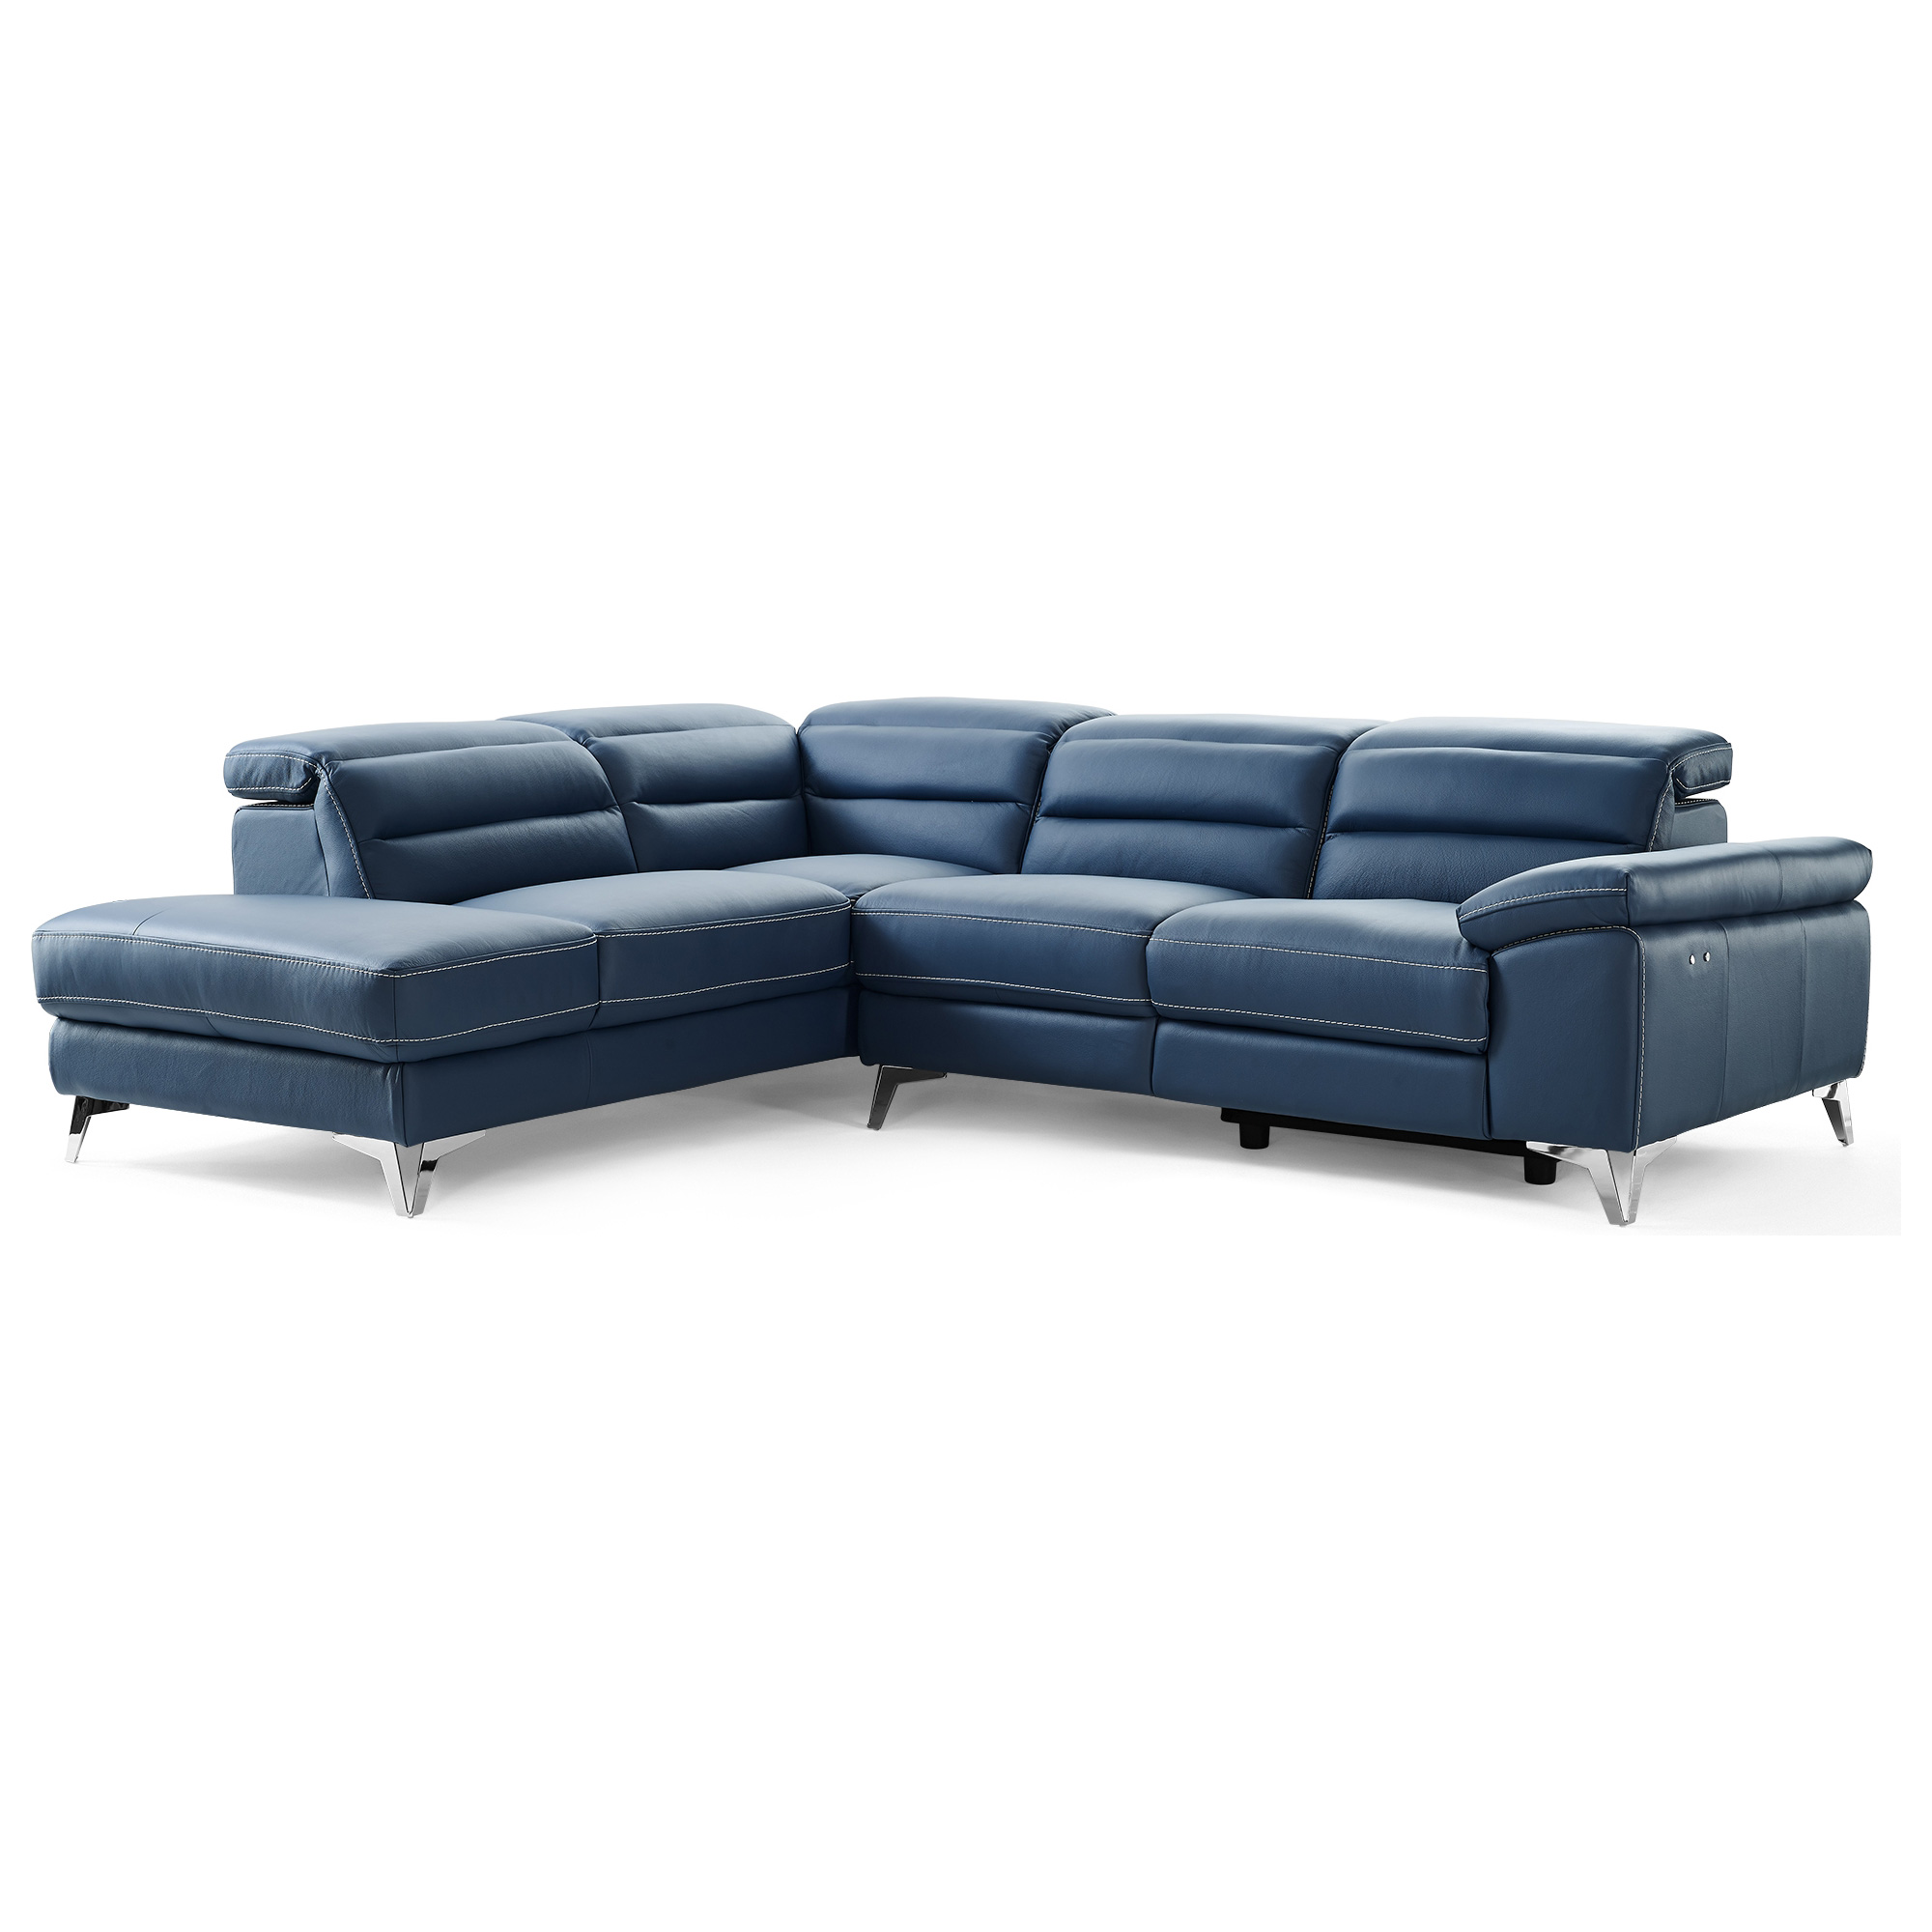 Whiteline Imports SL1349L NVY Johnson Sectional Sofa w Chaise on